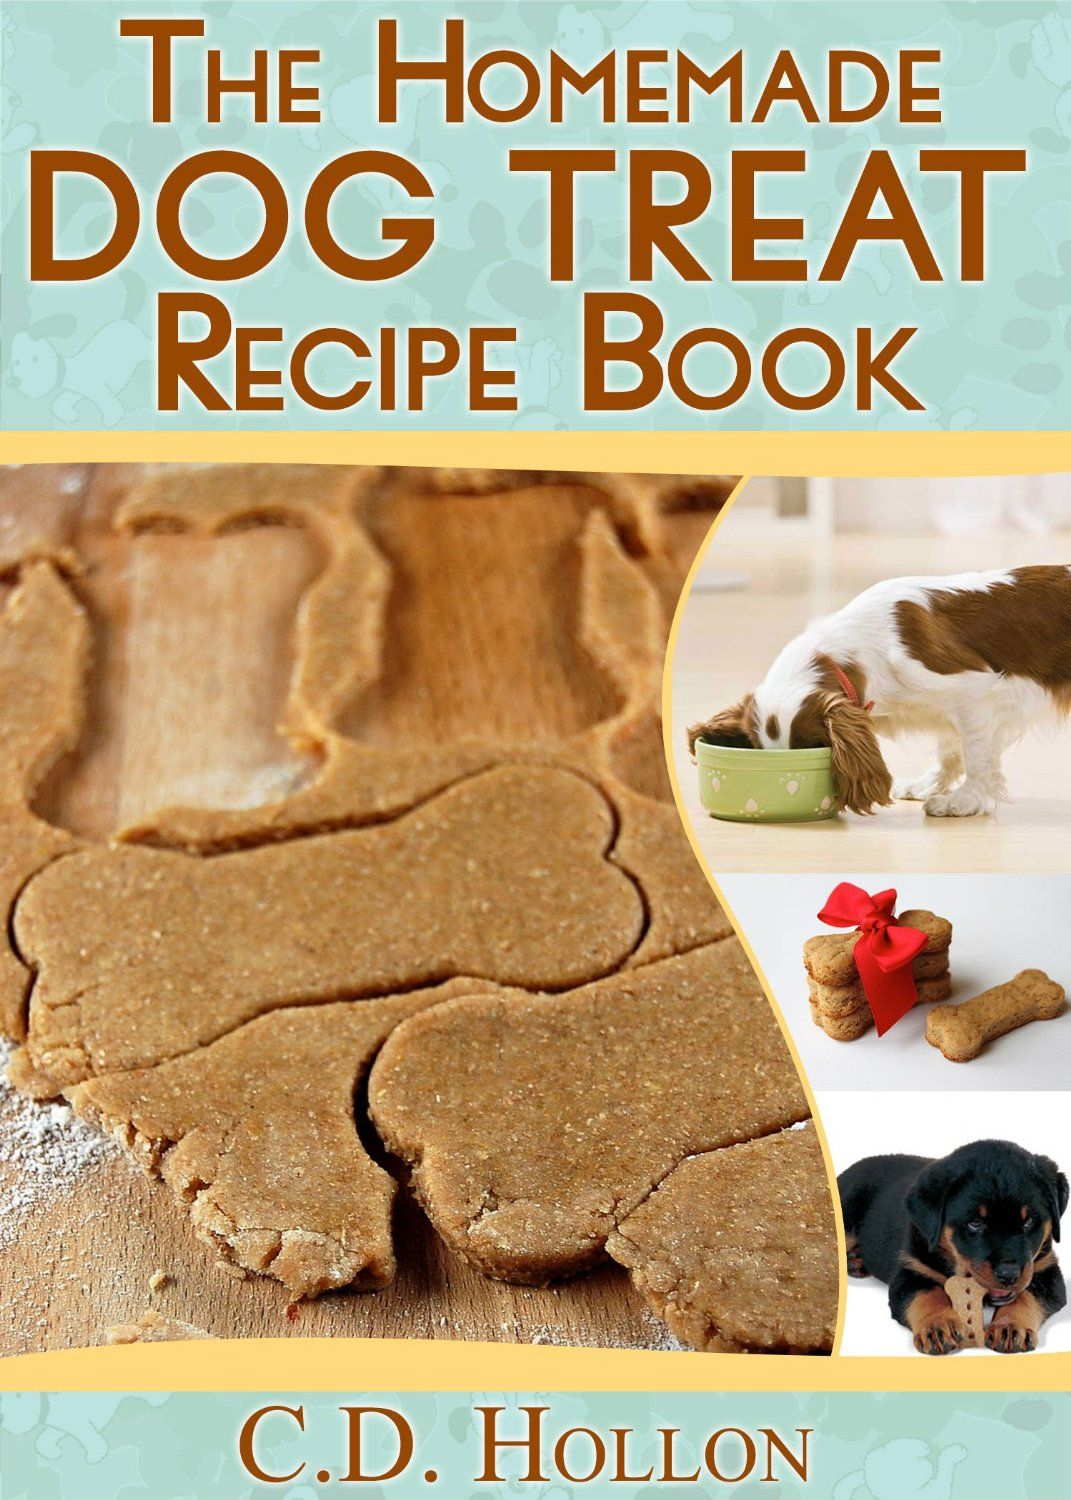 The homemade dog treat recipe book fun and easy homemade doggie the homemade dog treat recipe book fun and easy homemade doggie treats 317 forumfinder Image collections